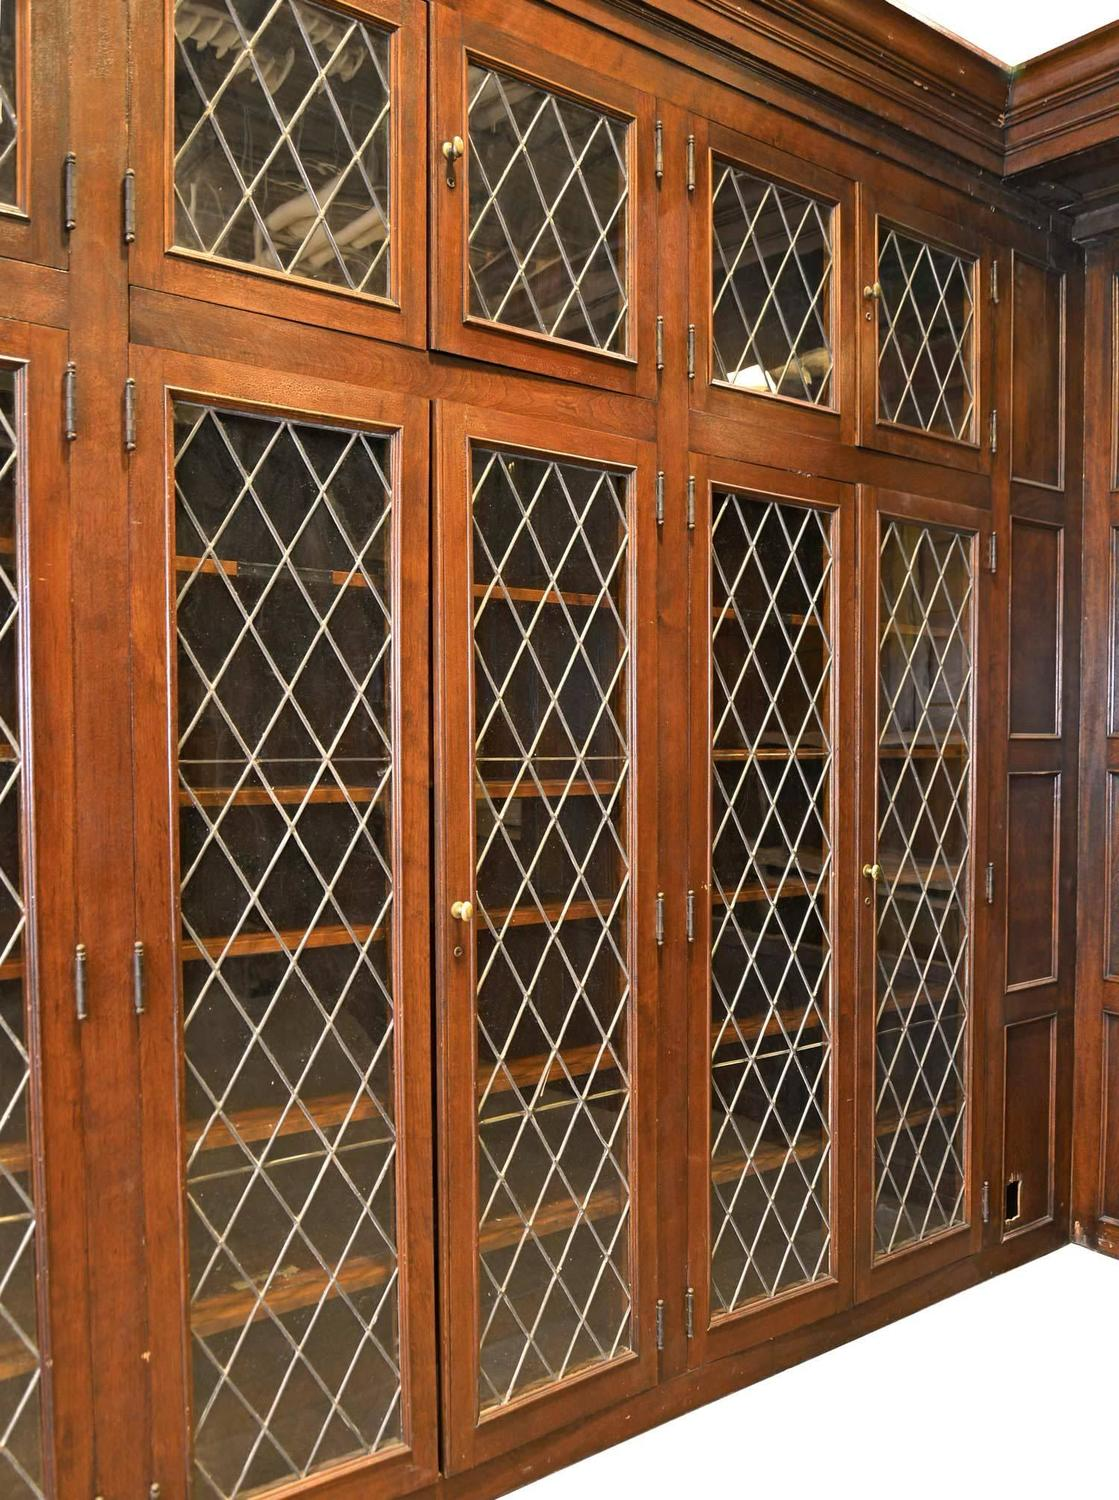 Complete Walnut Library With Diamond Pane Leaded Glass